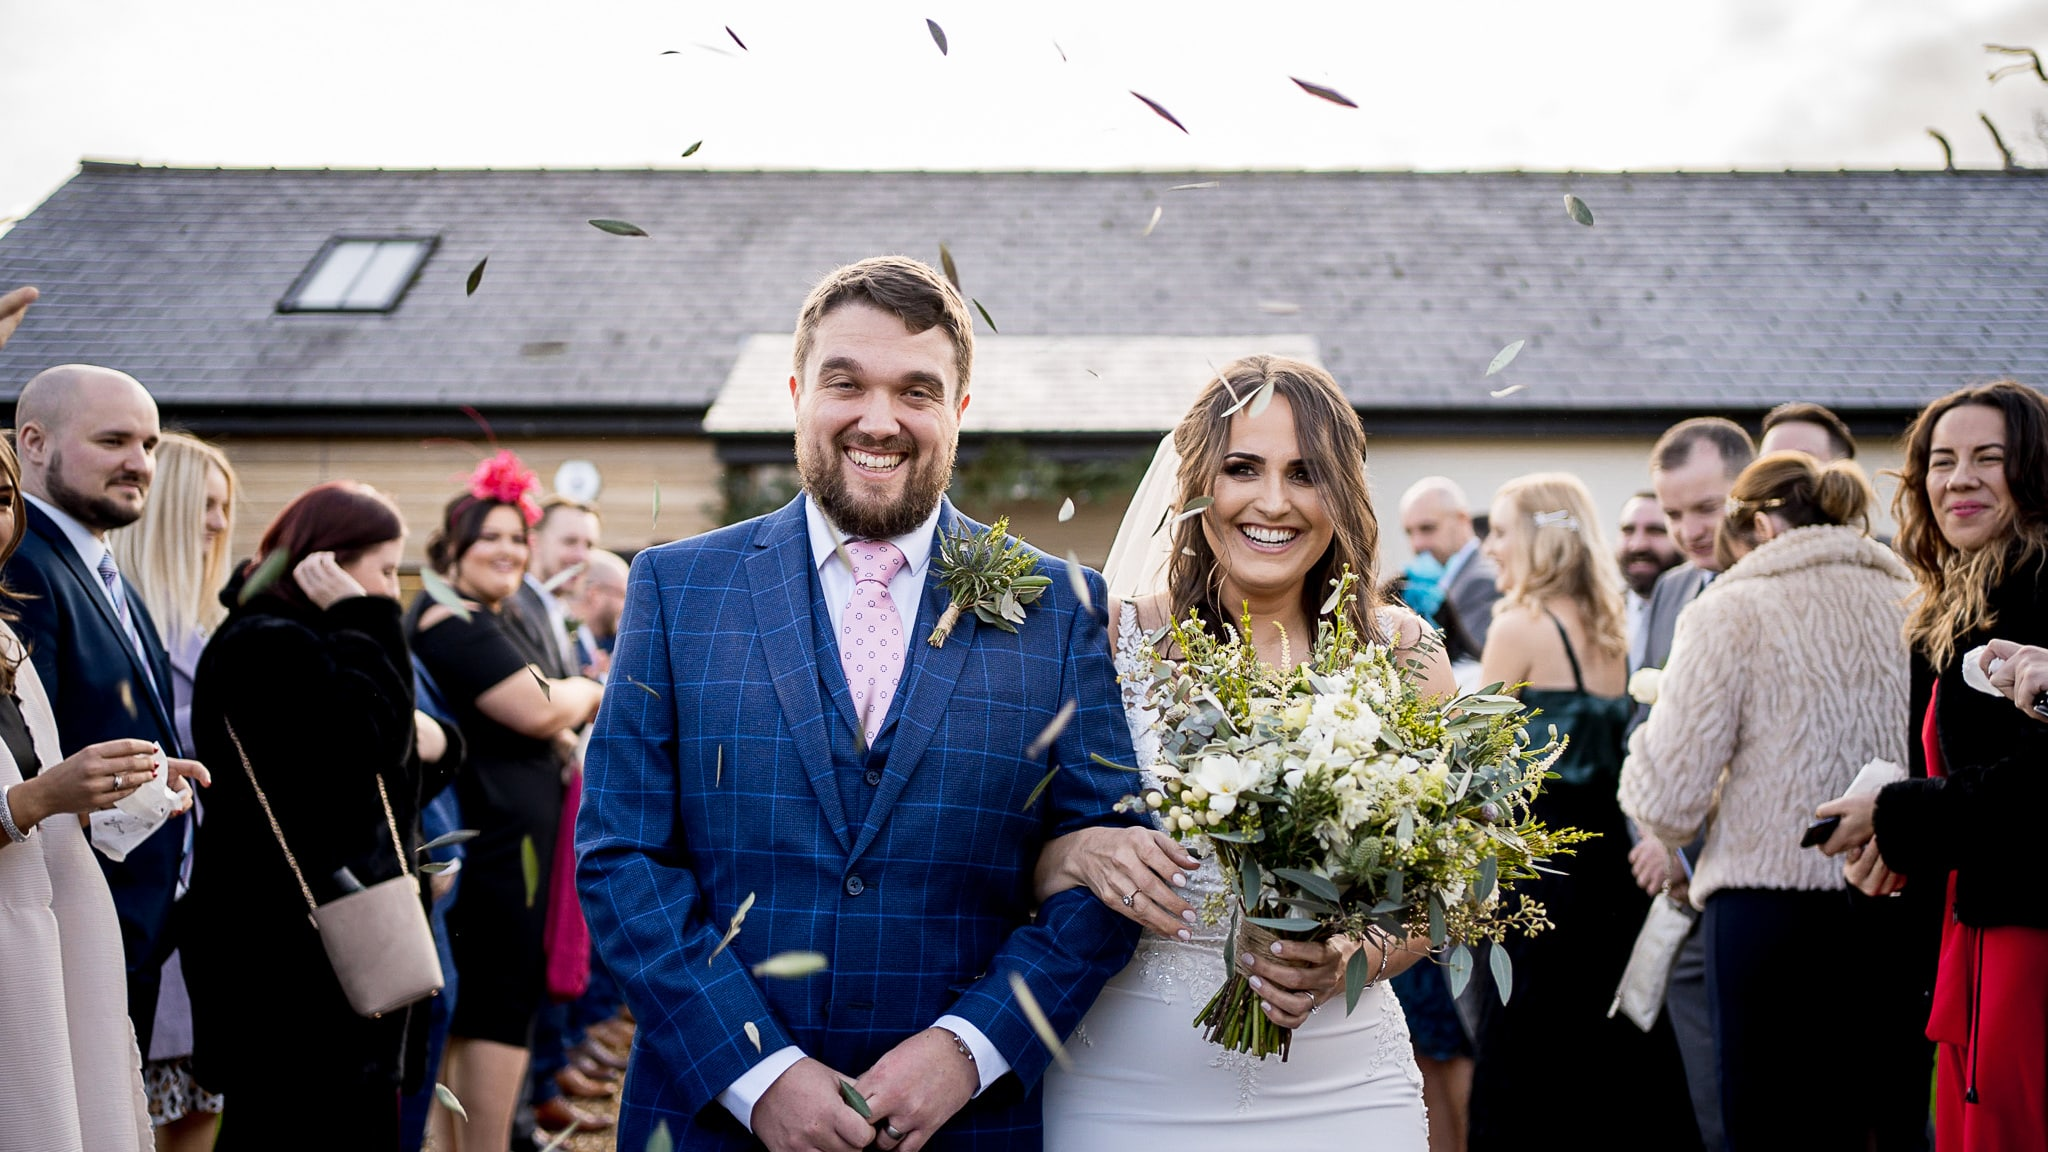 Wedding photographer capturing bride and groom during confetti at Oldwalls and Fairyhill in the Gower